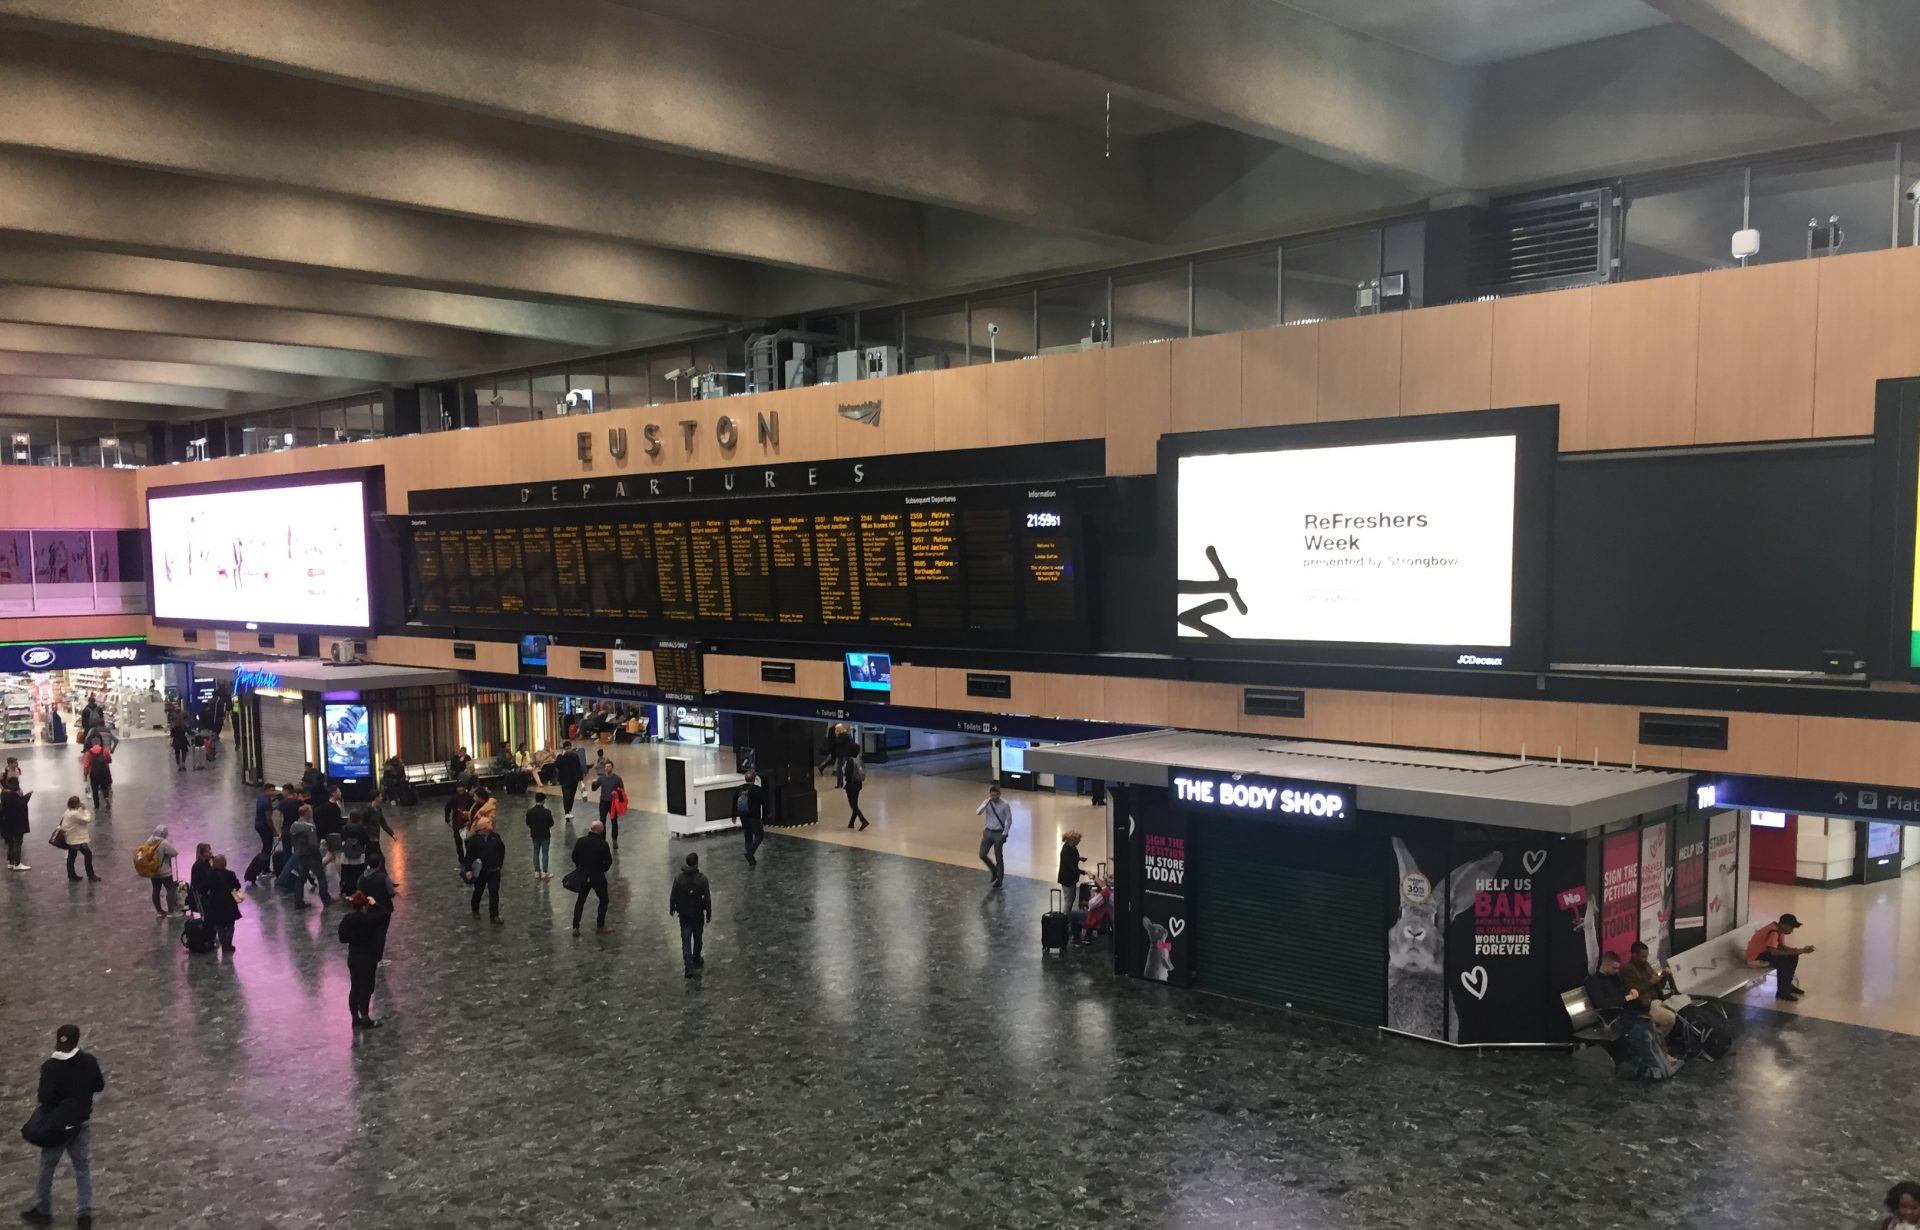 Category: euston